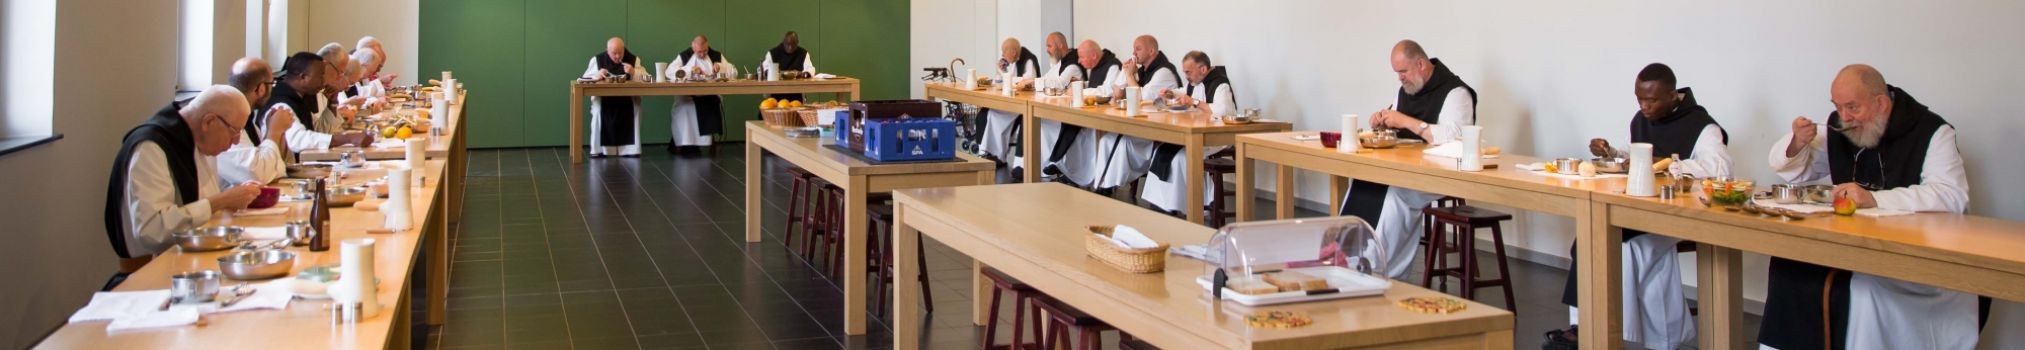 Monks share a meal in silence in the refectory.